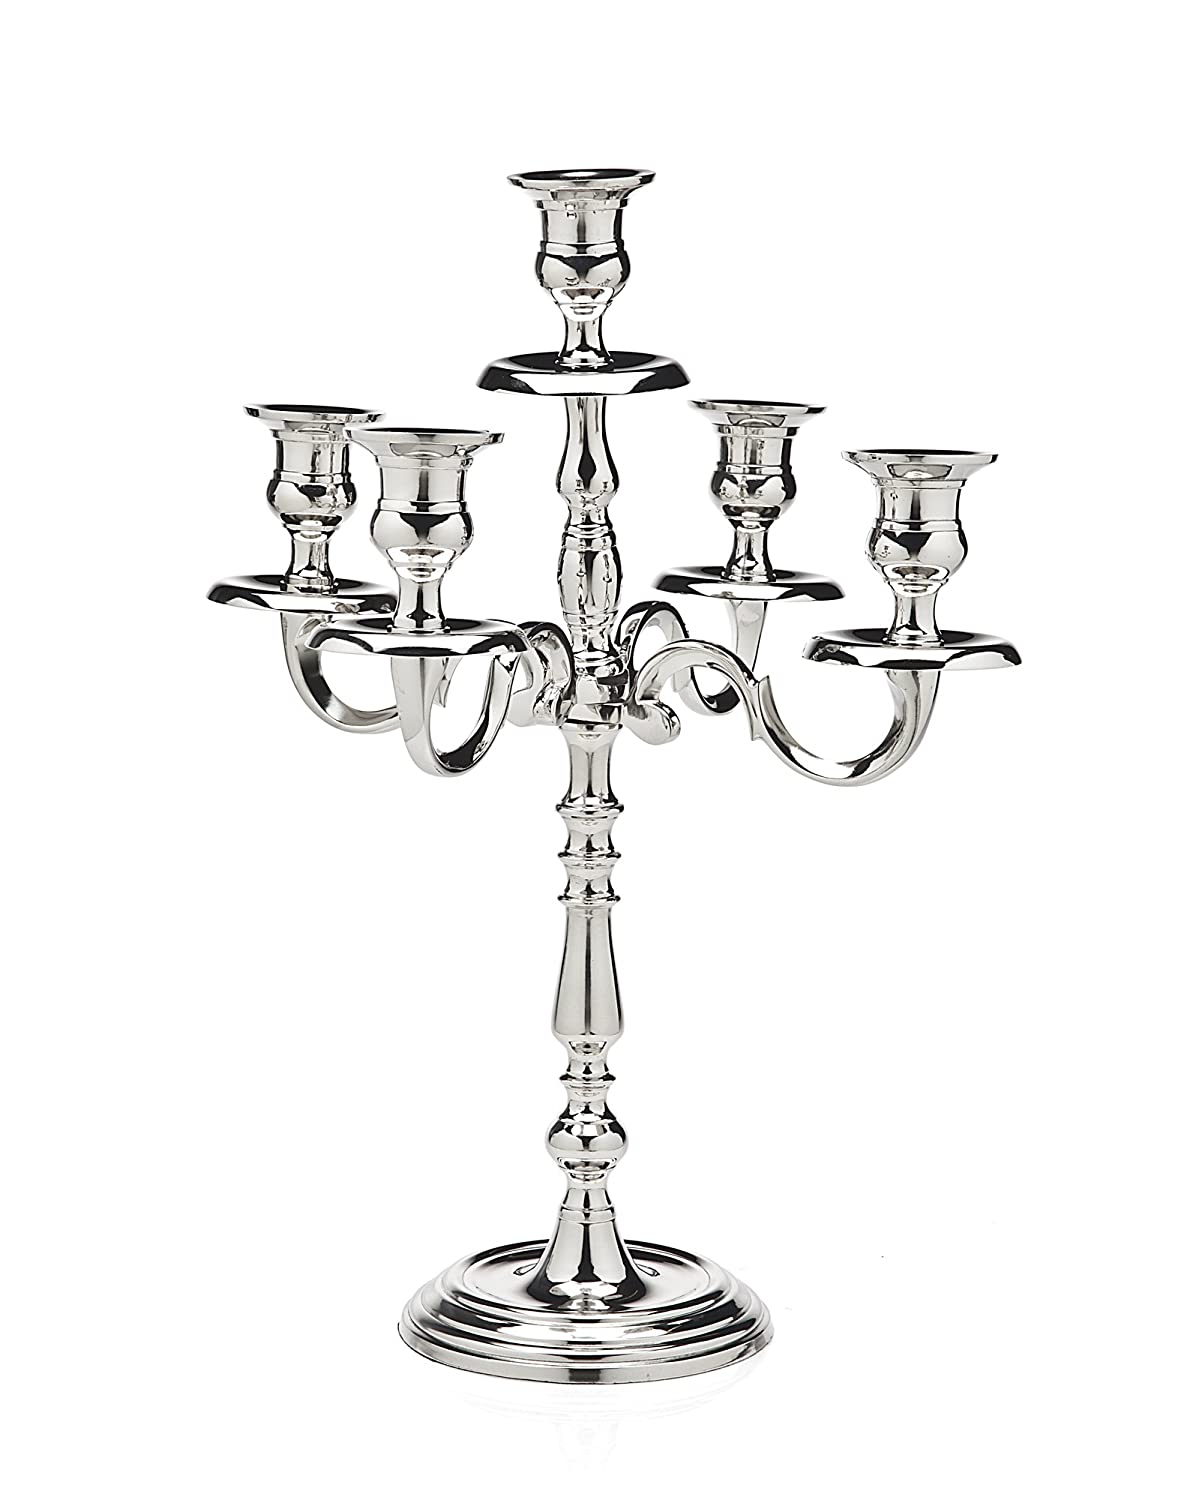 Tradition Silver Plated Candelabra 5 Light Godinger Silver Art AX-AY-ABHI-52995